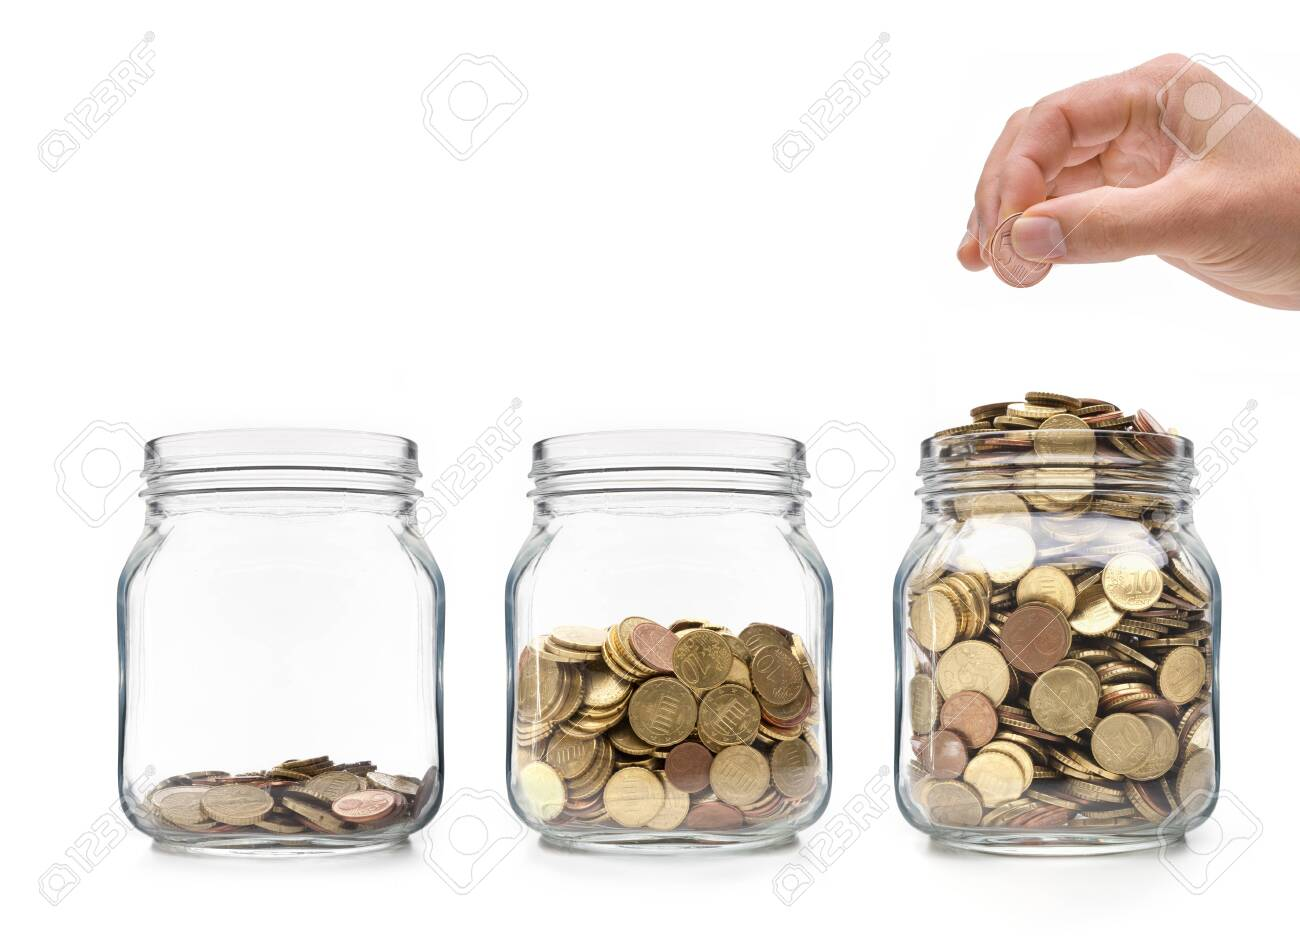 Hand with 5 cents coin and glasses with coins - 137602701